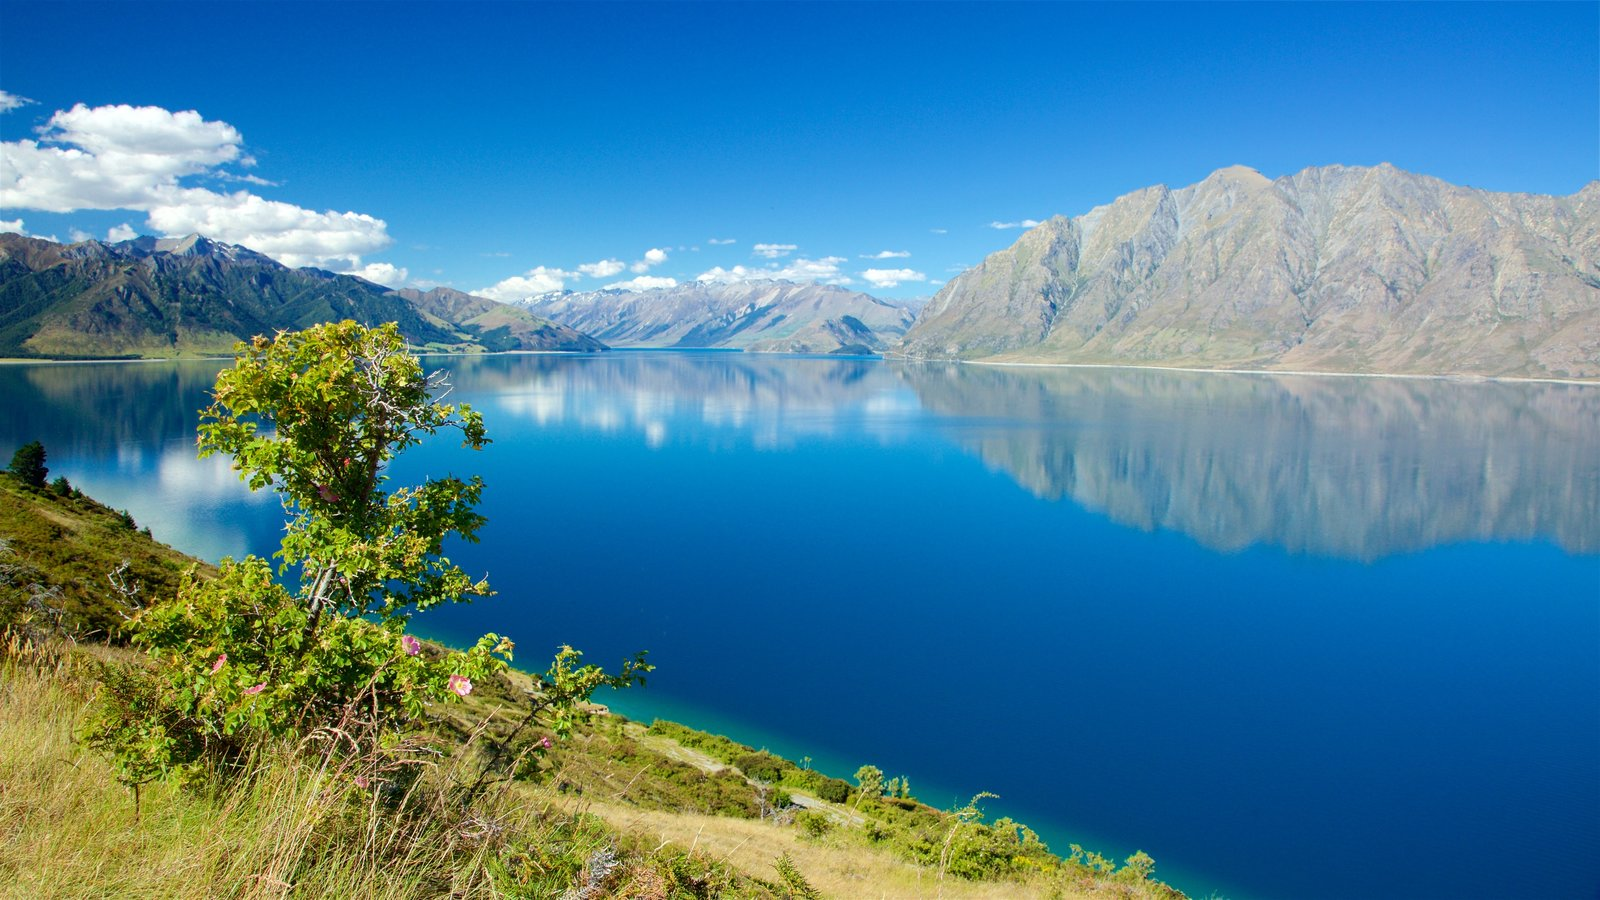 Lake Hawea which includes a lake or waterhole and mountains